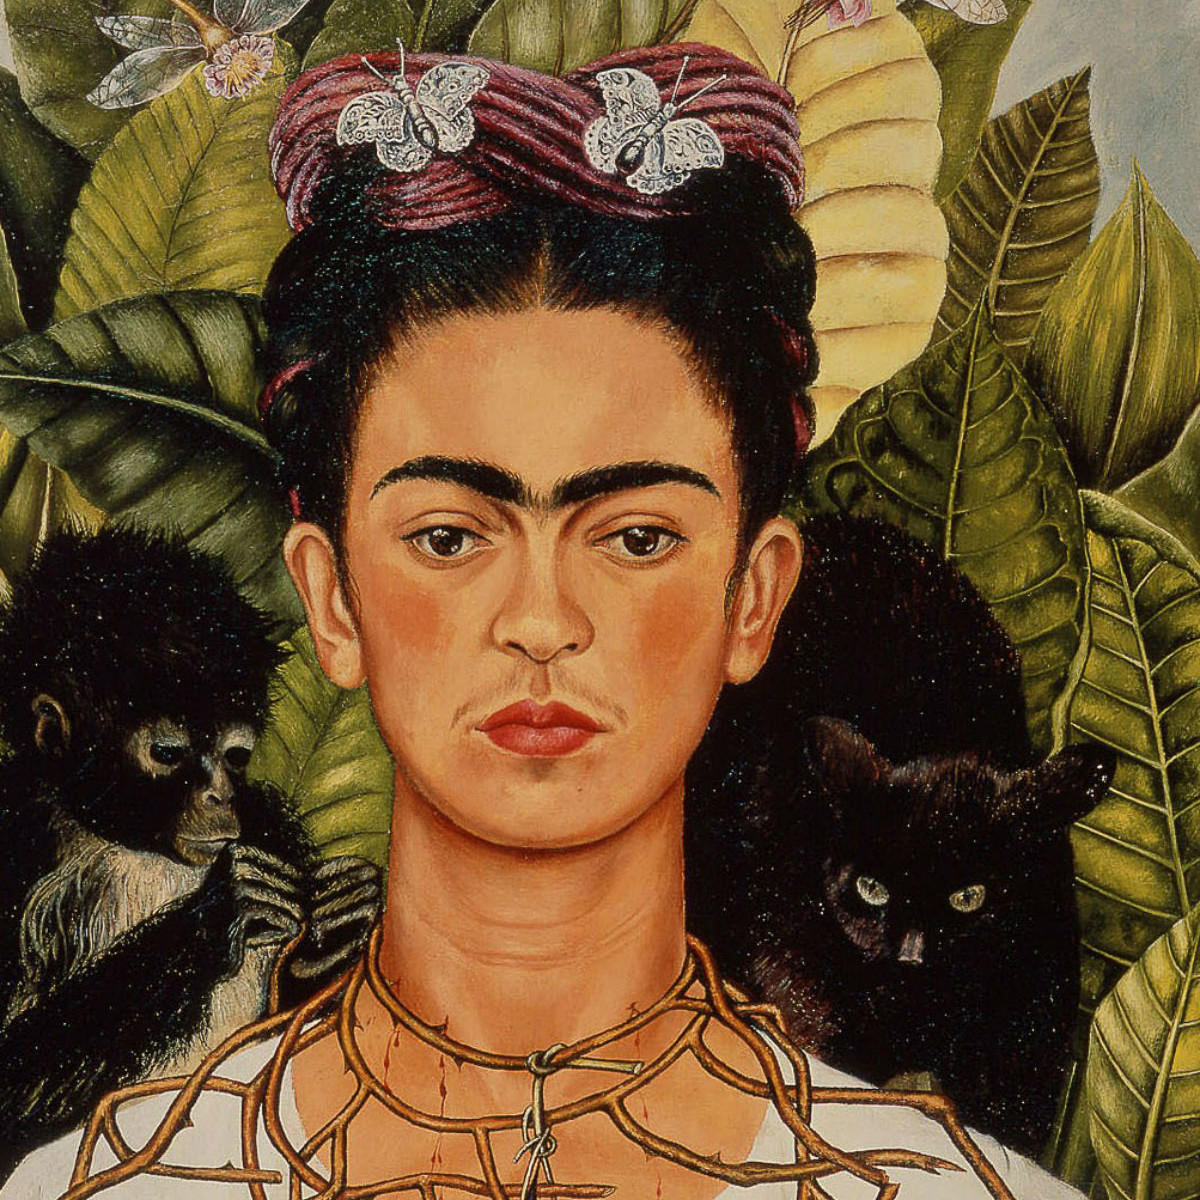 News_Frida_Kahlo_Self_Portrait_with_thorn necklace_hummingbirds